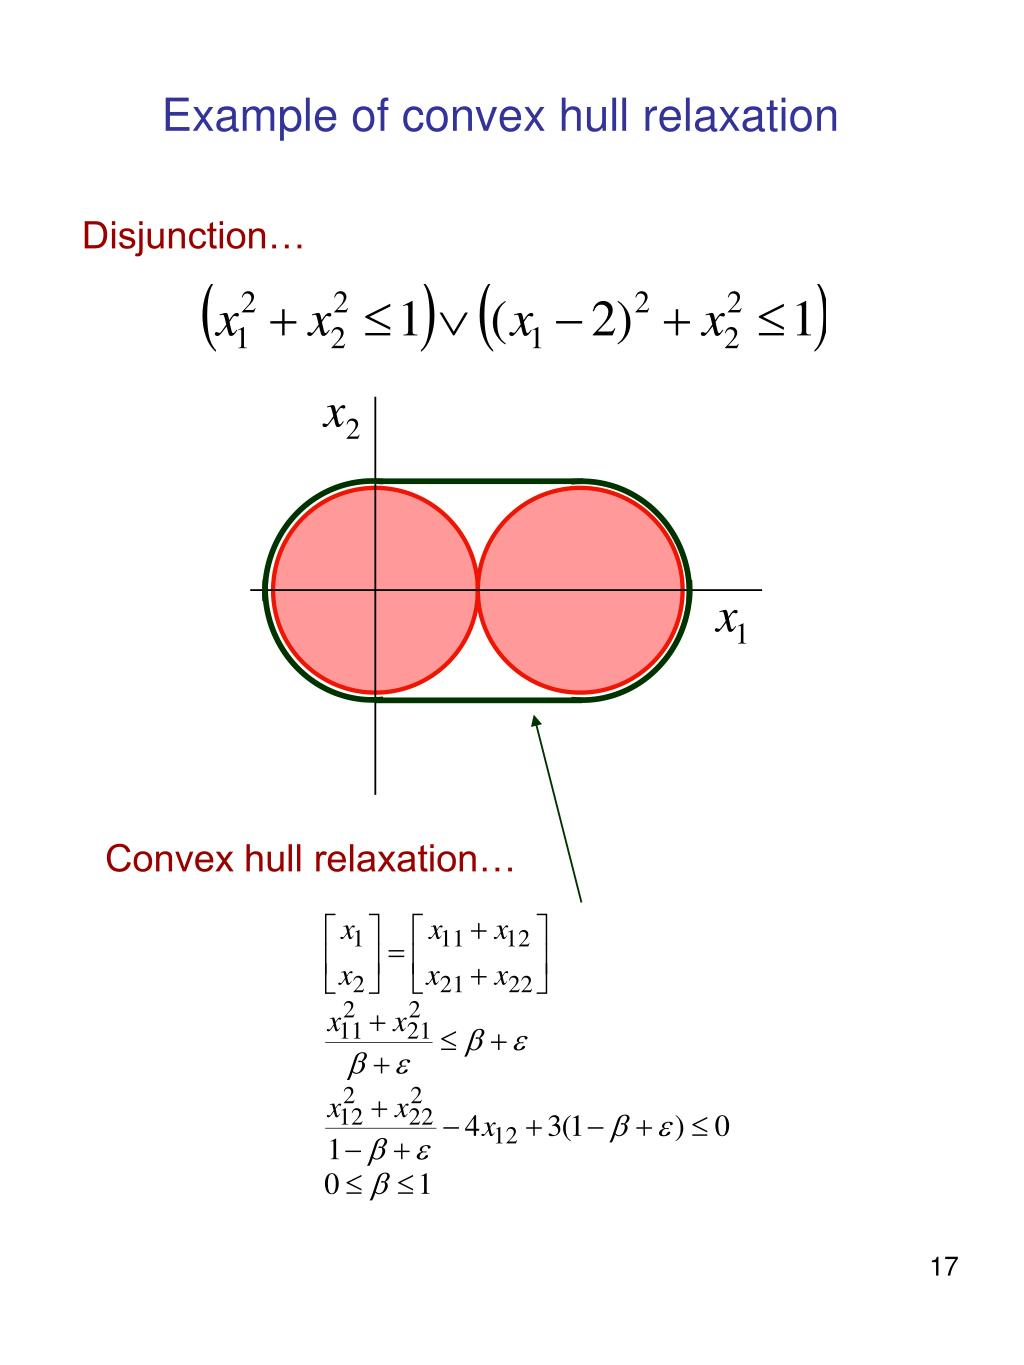 Convex hull relaxation…